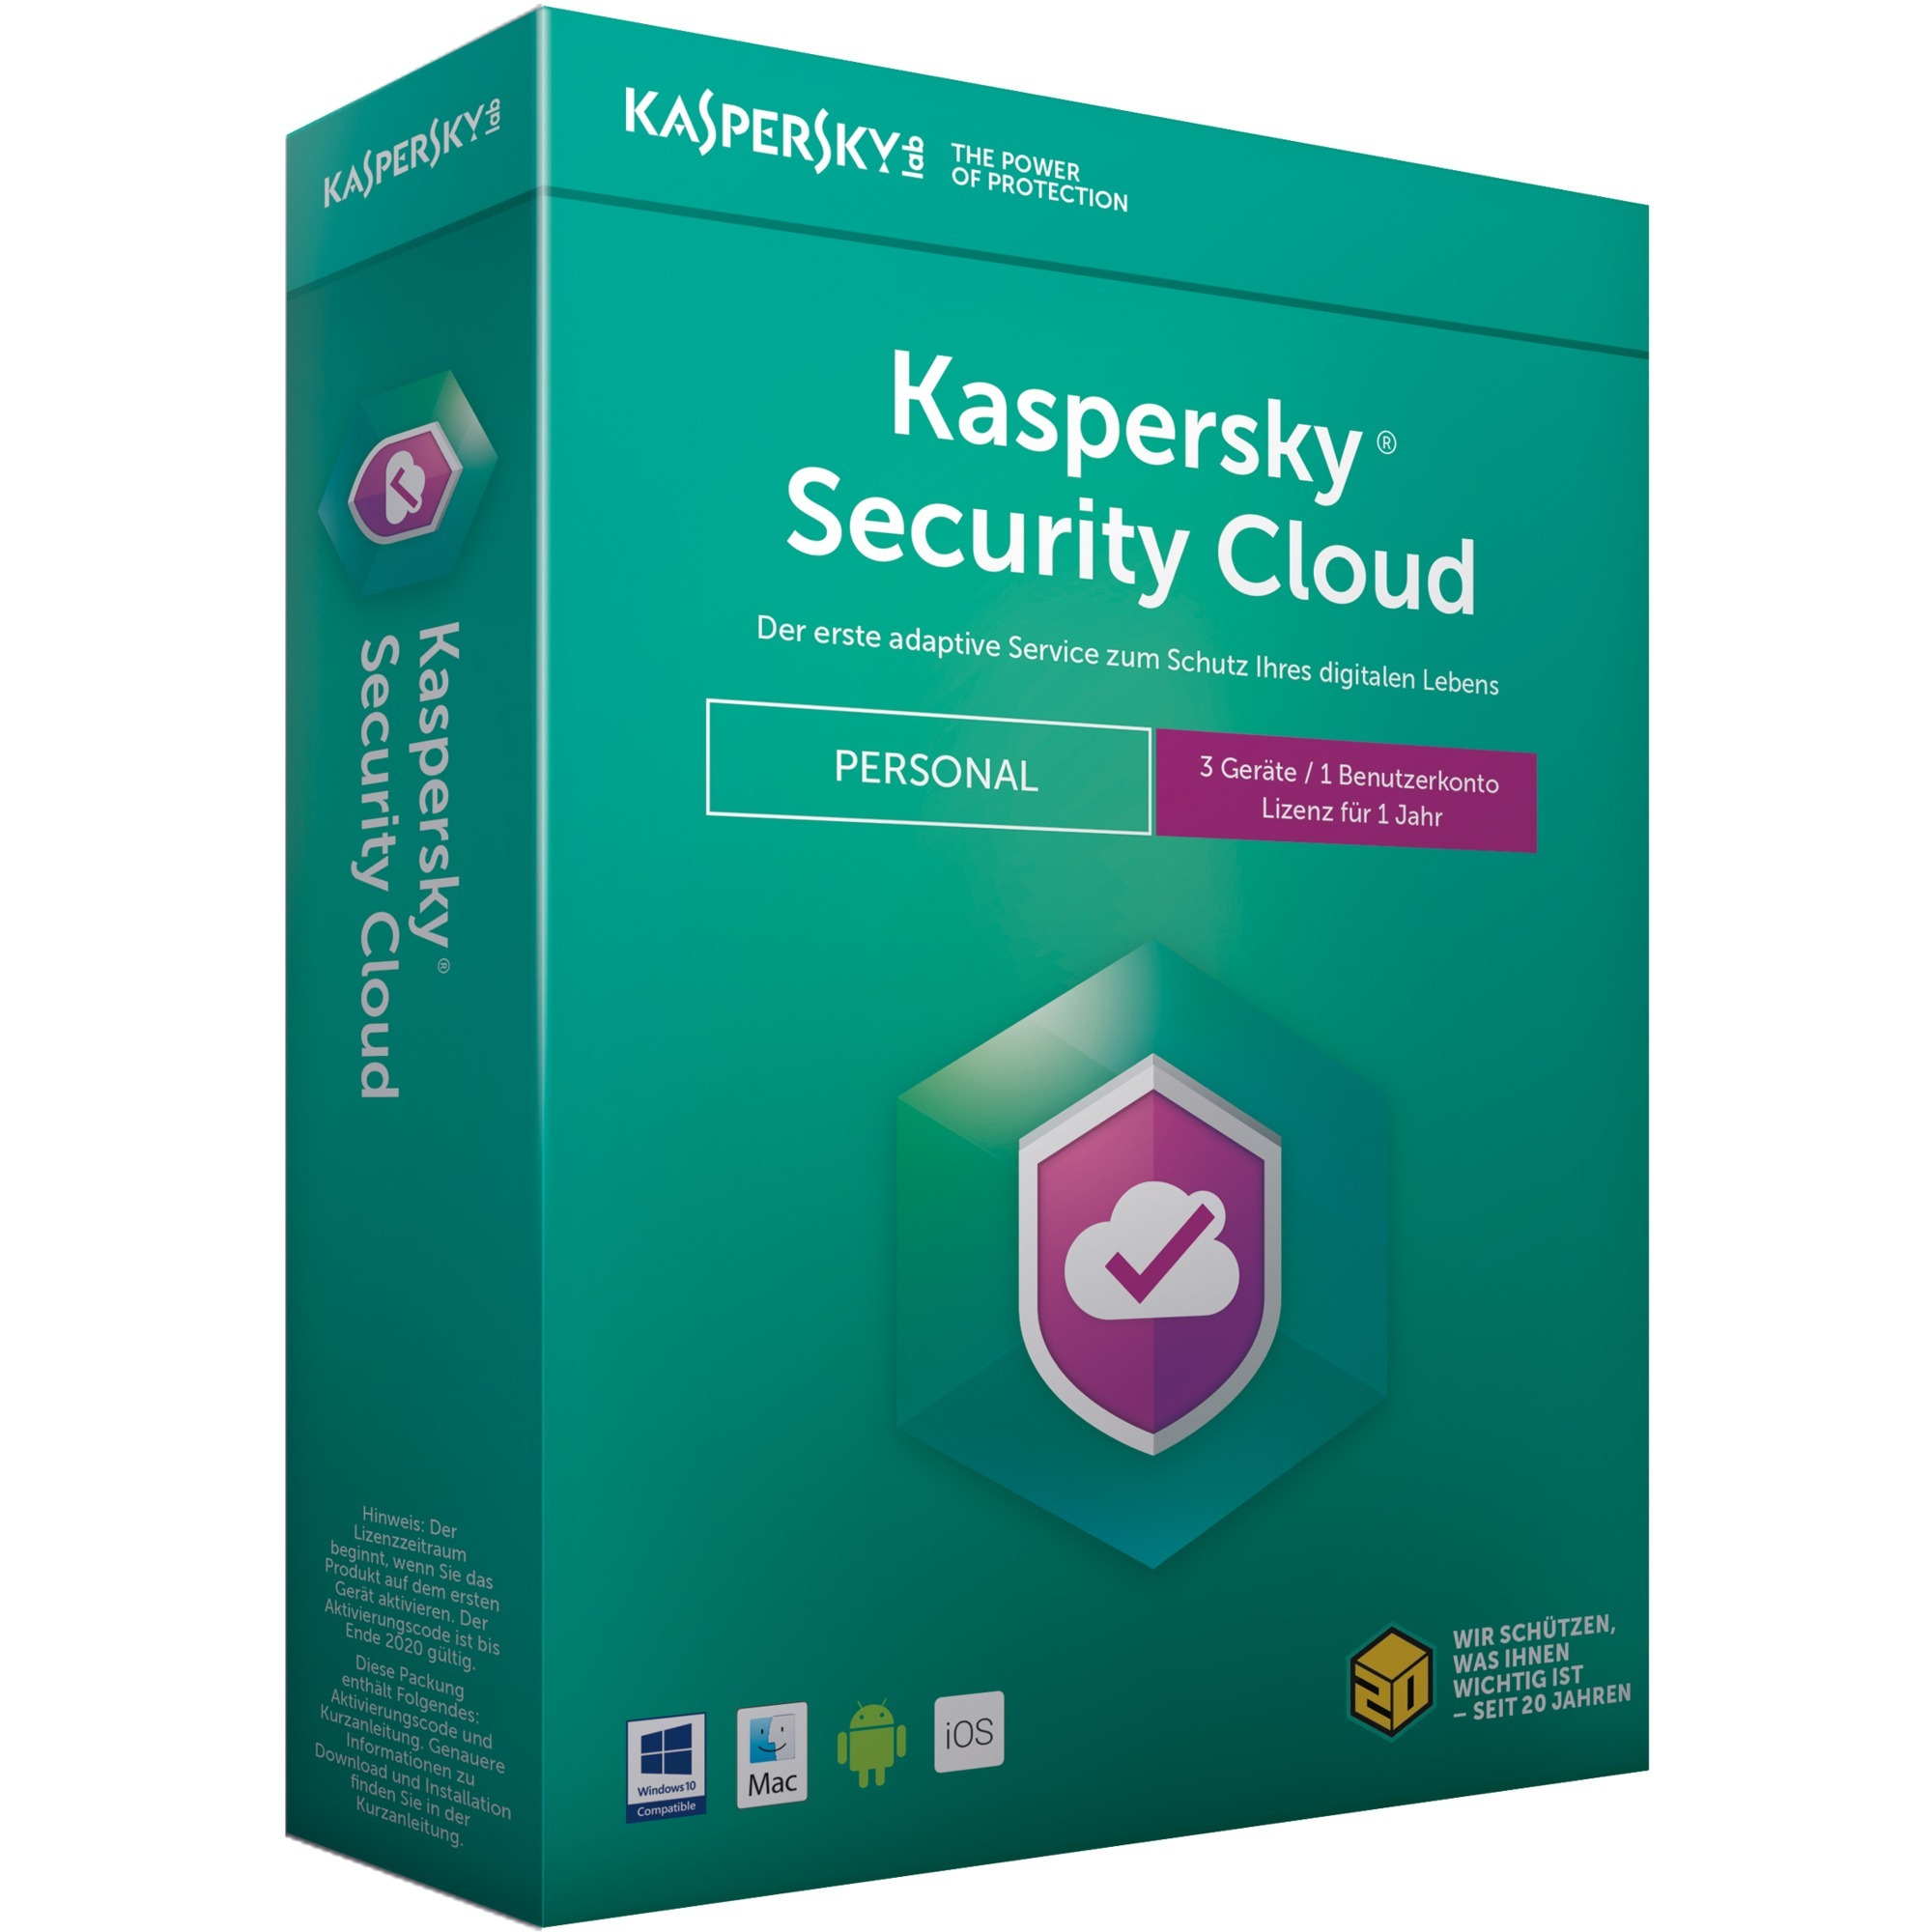 security-cloud-personal-edition-3brugere-1aar-full-license-tysk-software